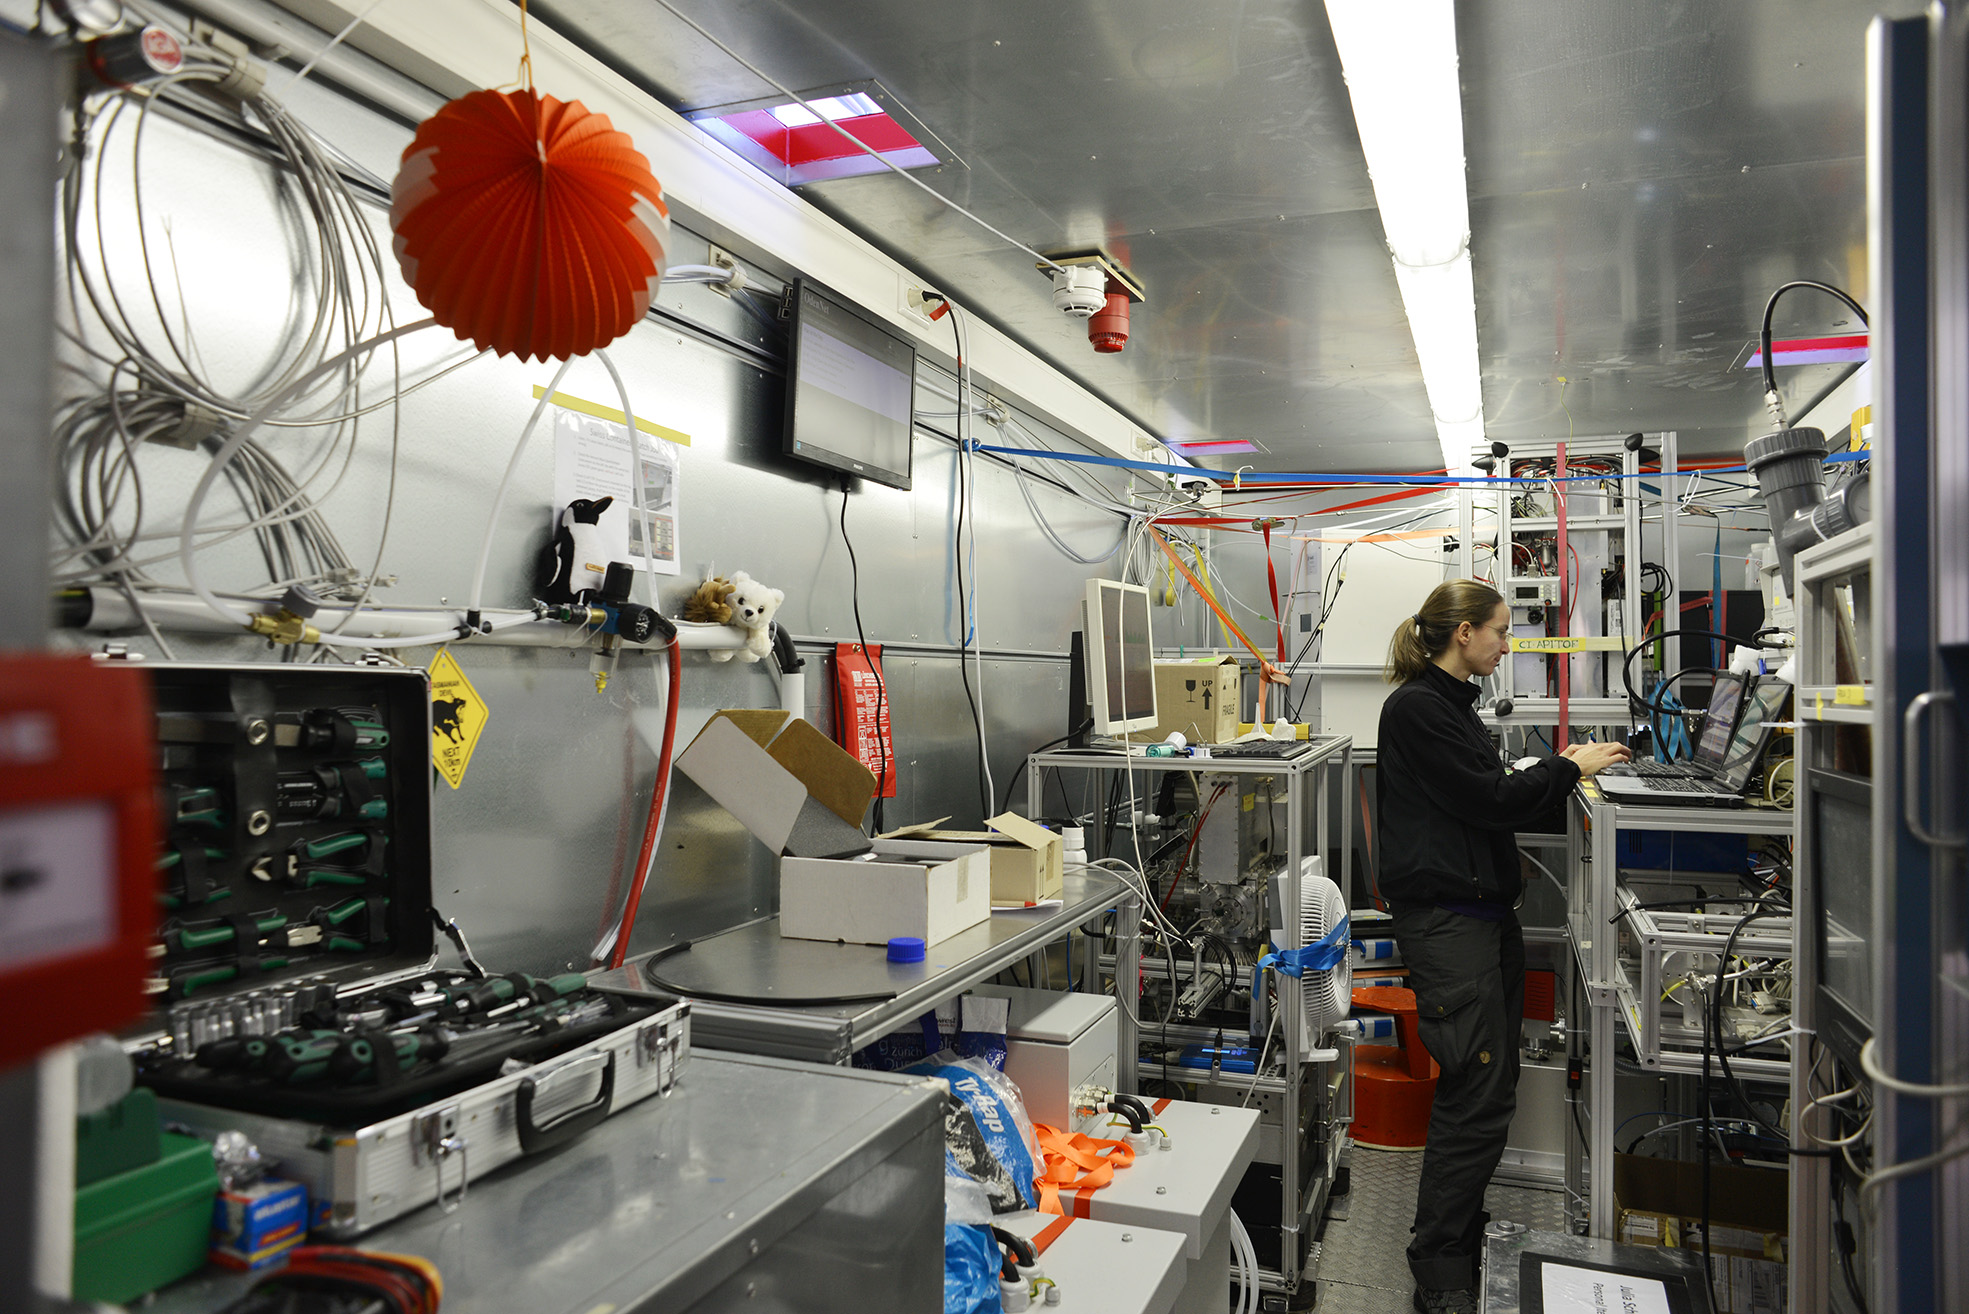 Julia Schmale working inside the Swiss lab-container with aerosol instrumentation in the background. Photo: Paul Zieger